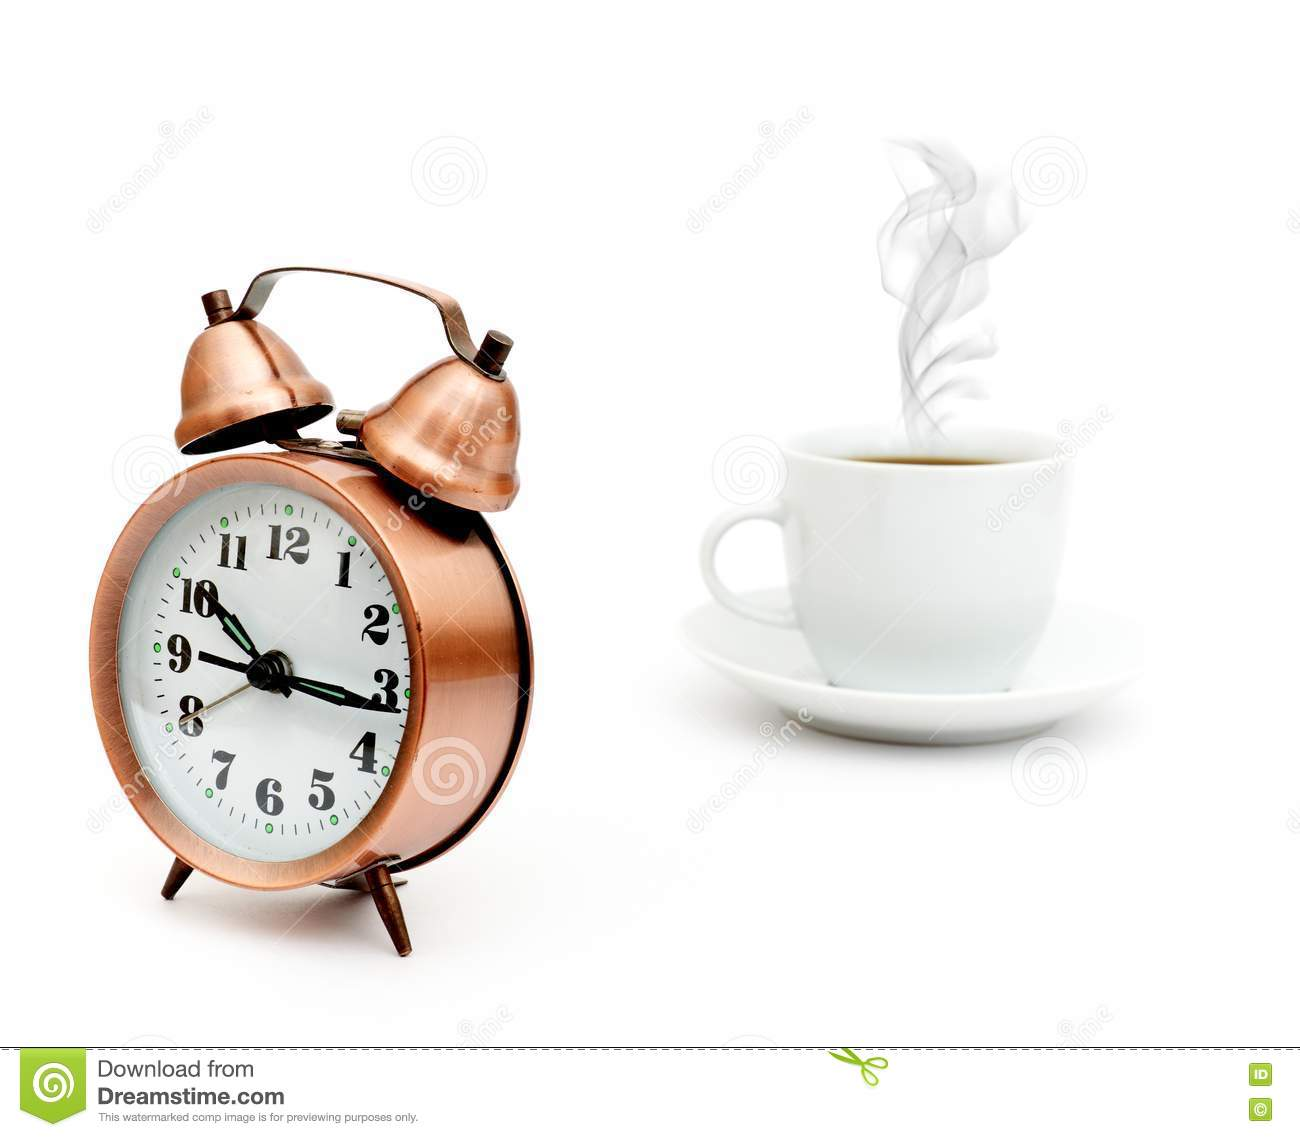 Vintage Alarm Clock And White Coffee Cup Stock Photography - Image: 17851782